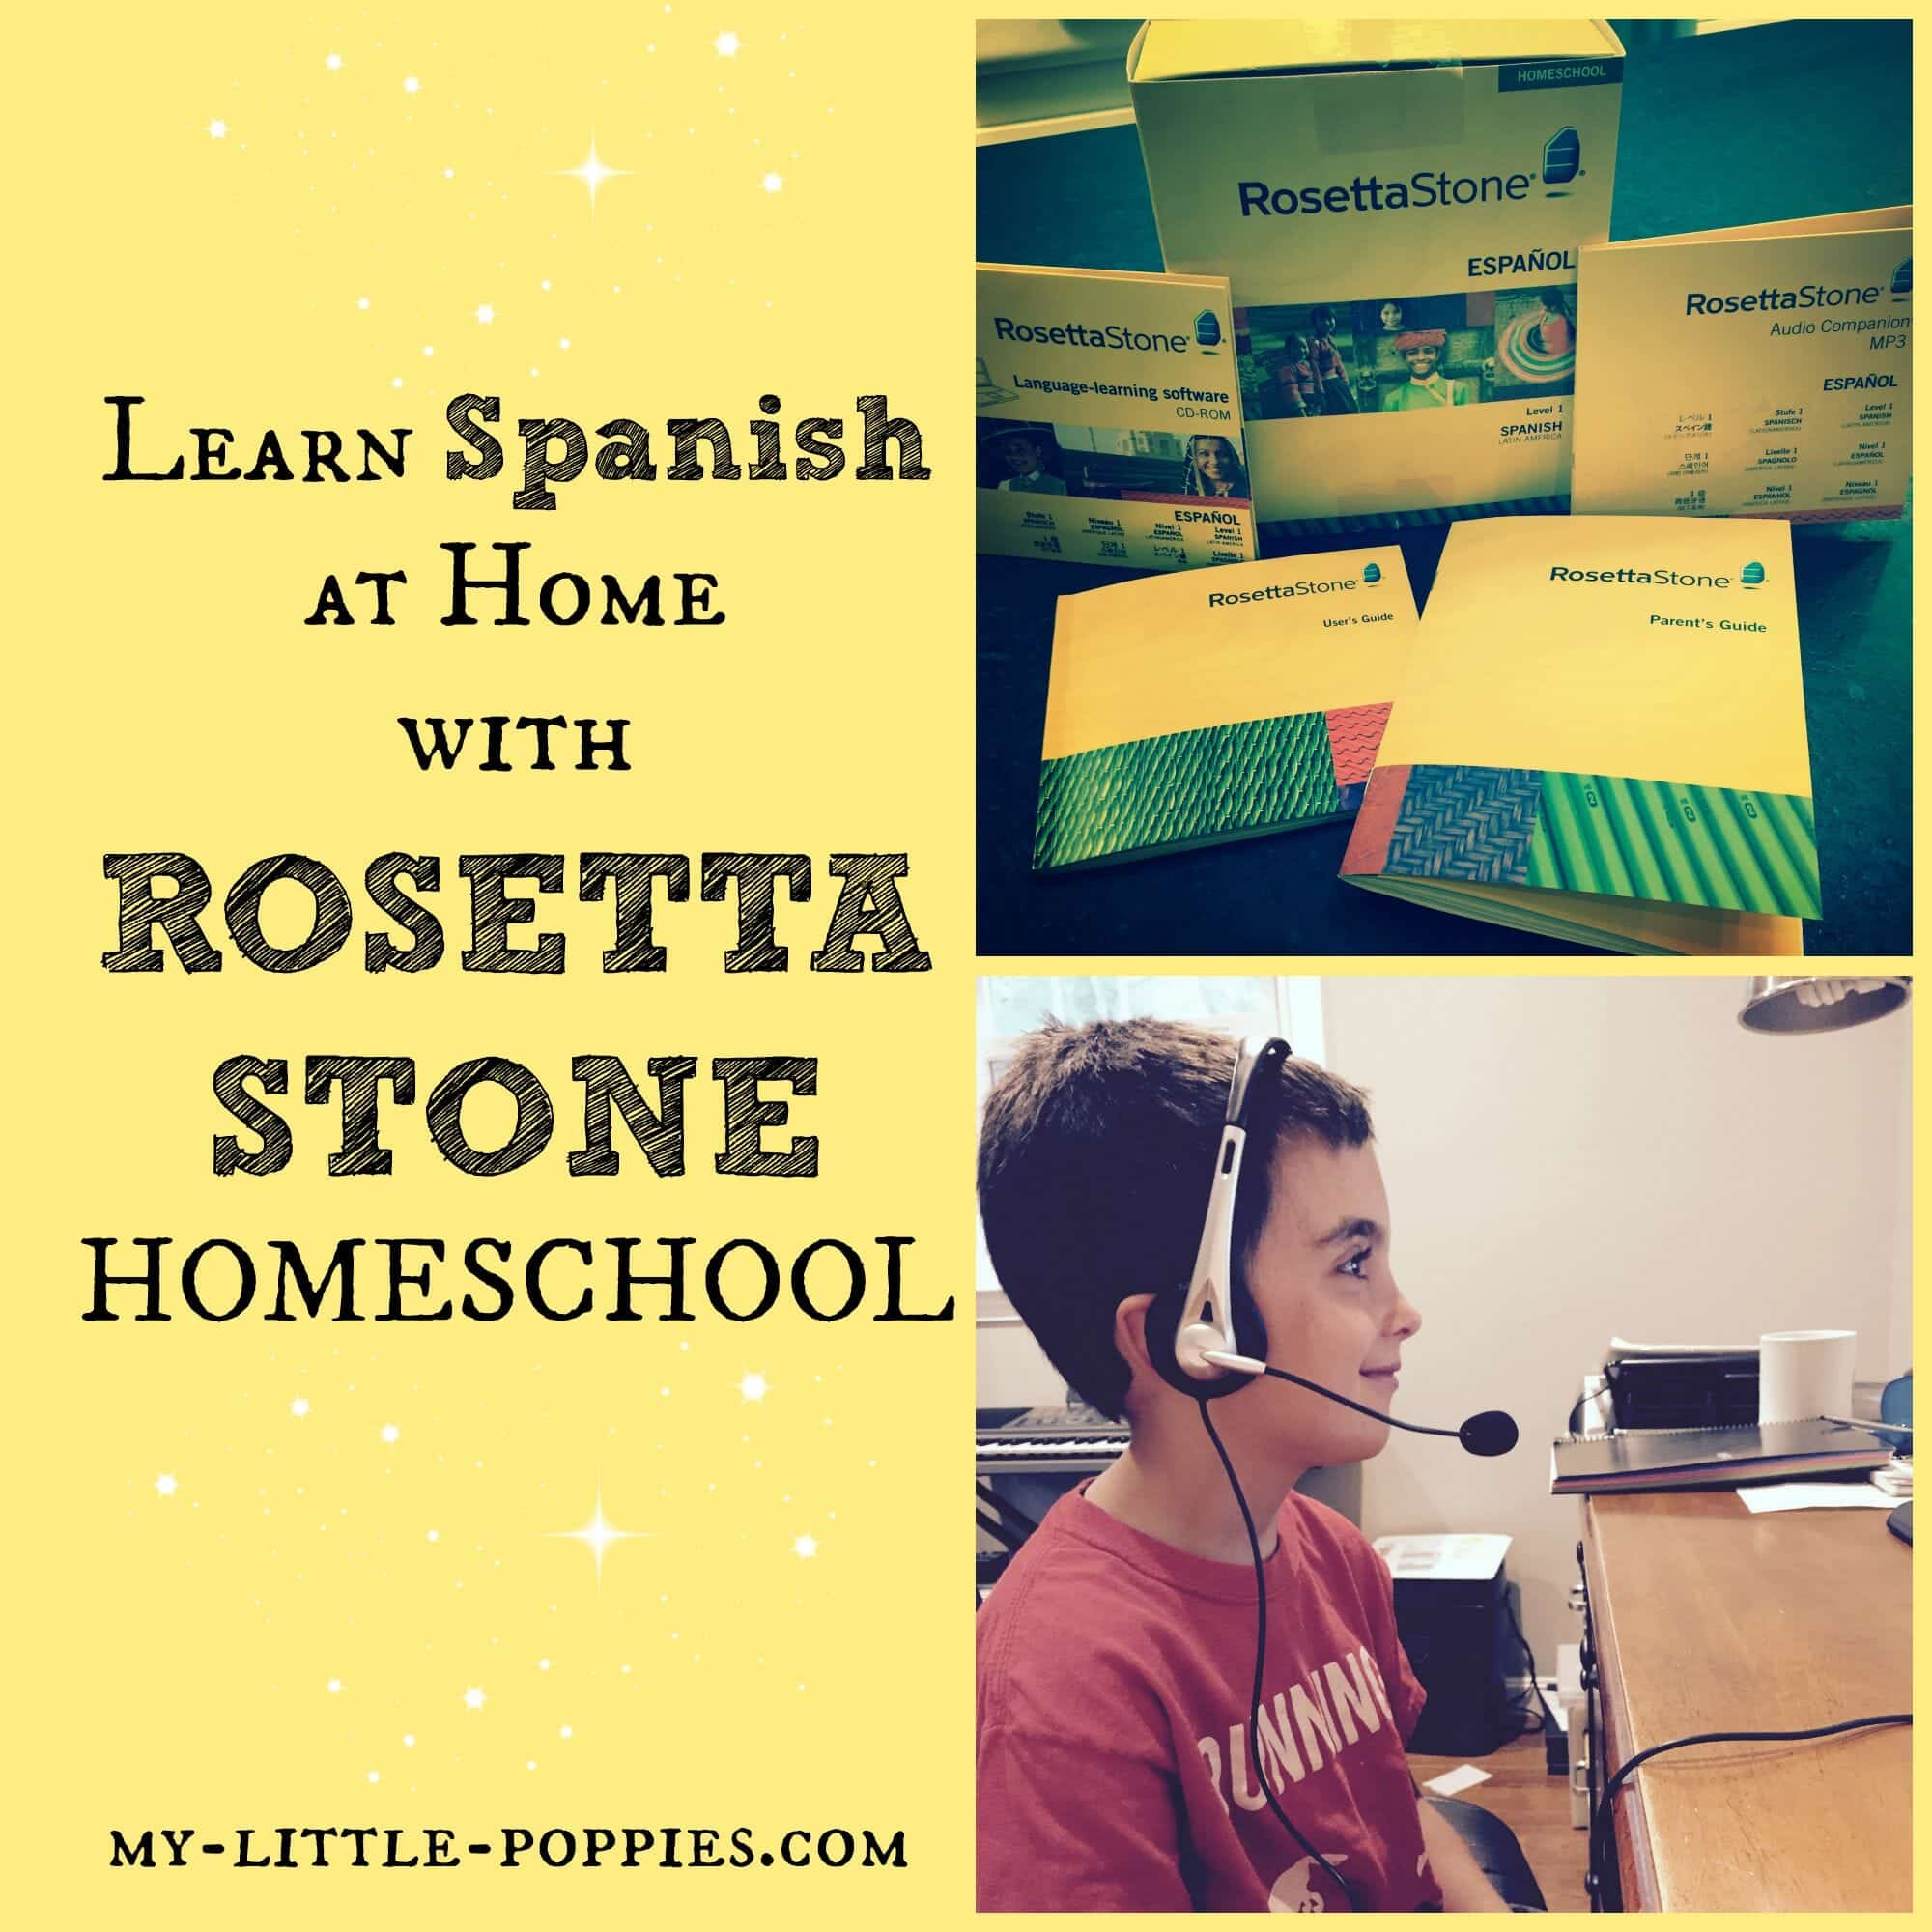 Learn Spanish at Home with Rosetta Stone Homeschool | My